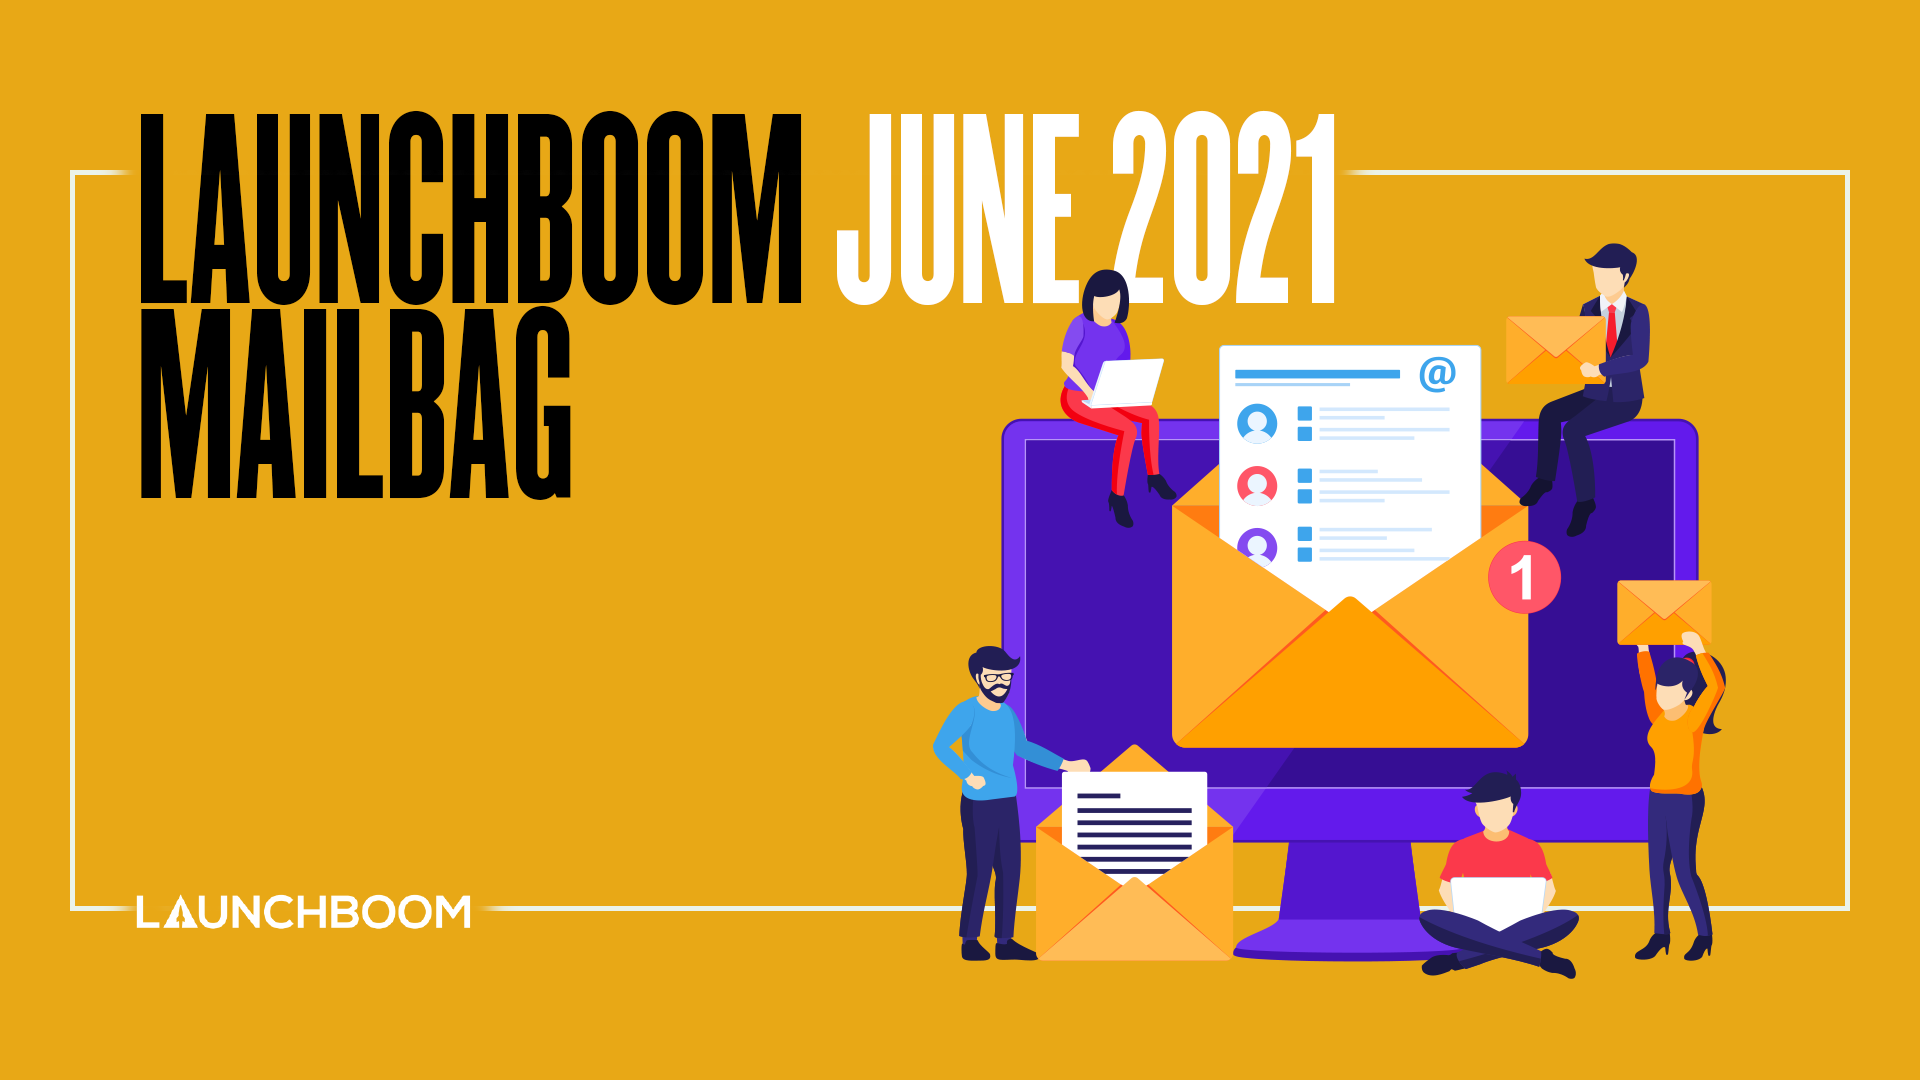 June 2021 LaunchBoom Mailbag: where we work, crowdfunding video script, and perk structures